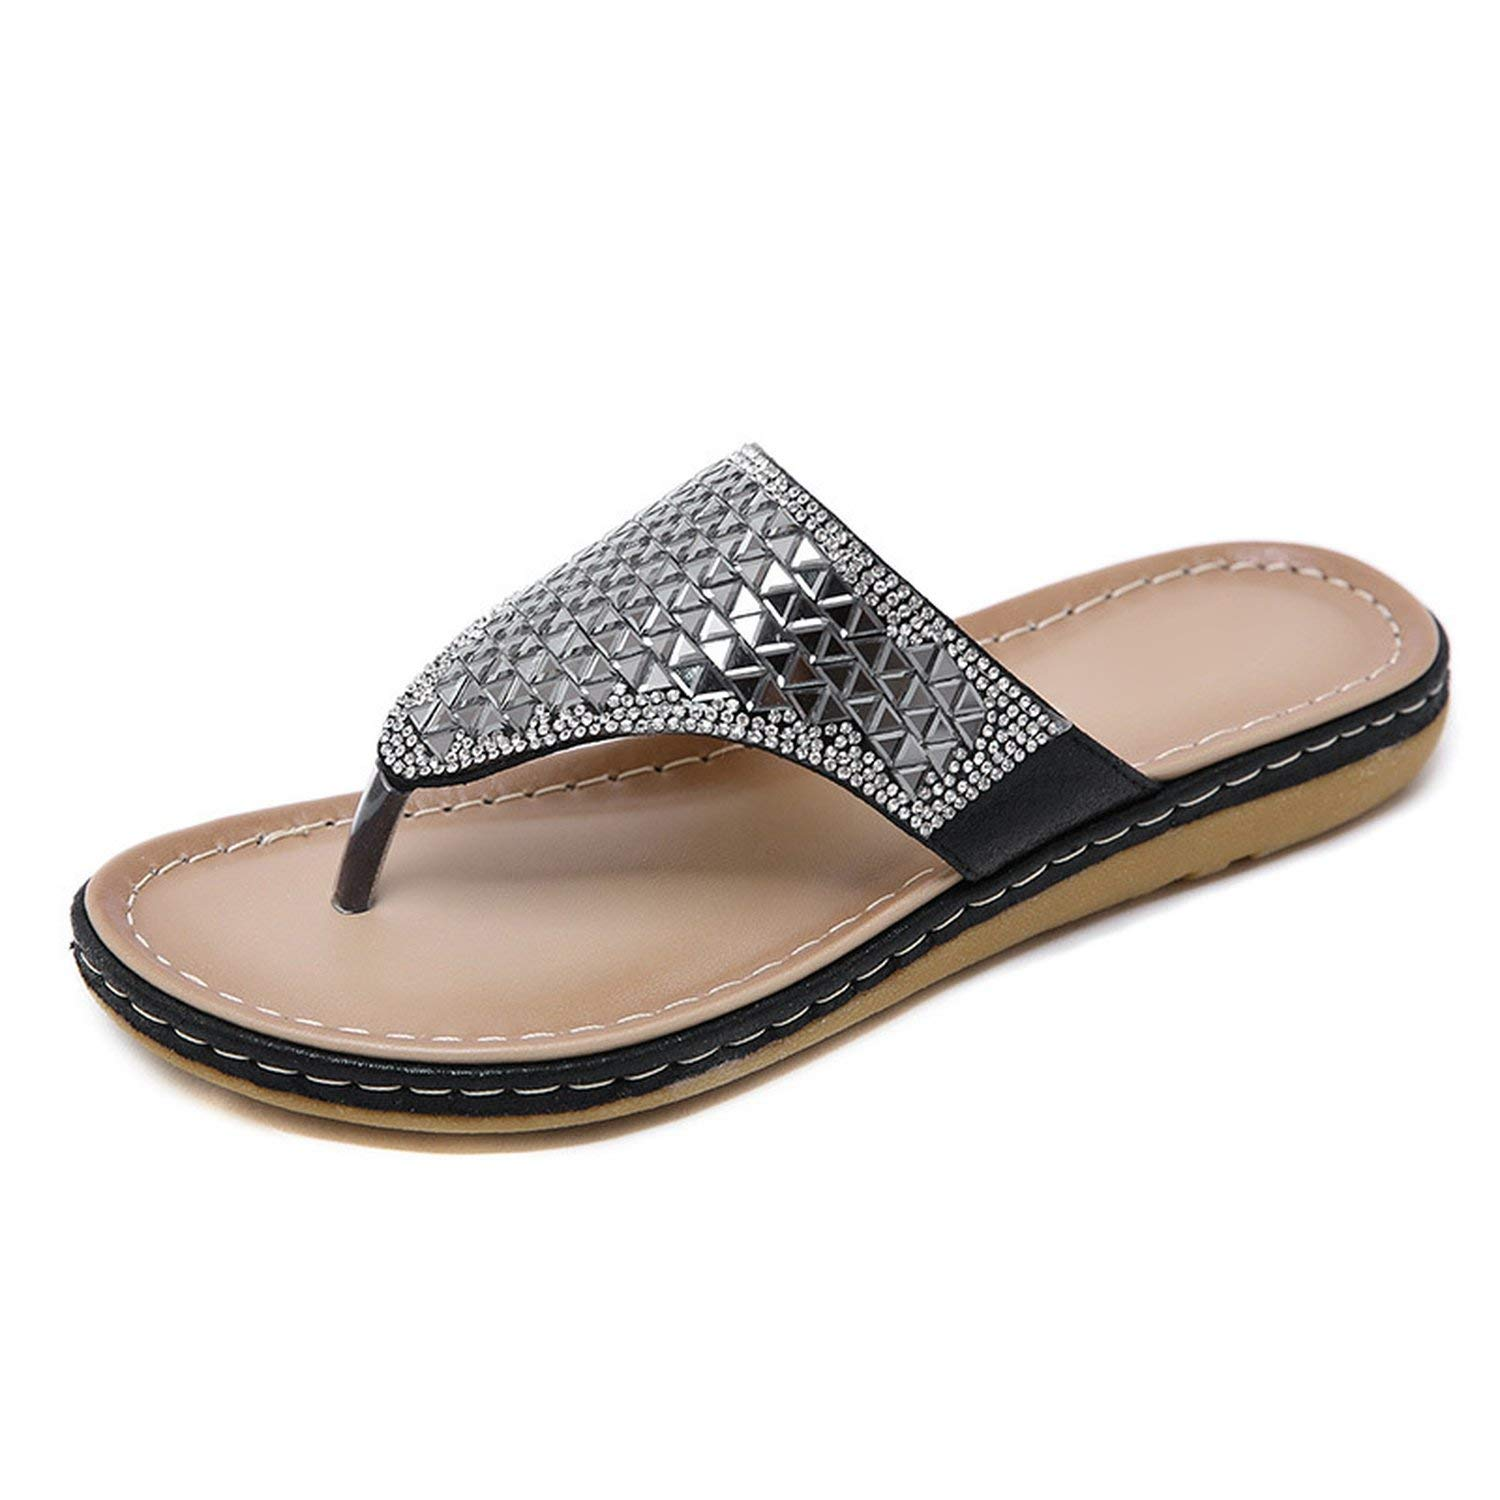 For What Reason 2019 Summer Women Slippers Bling Shoes Flat Beach Flip Flops Summer Soft Comfortable,Black,4.5